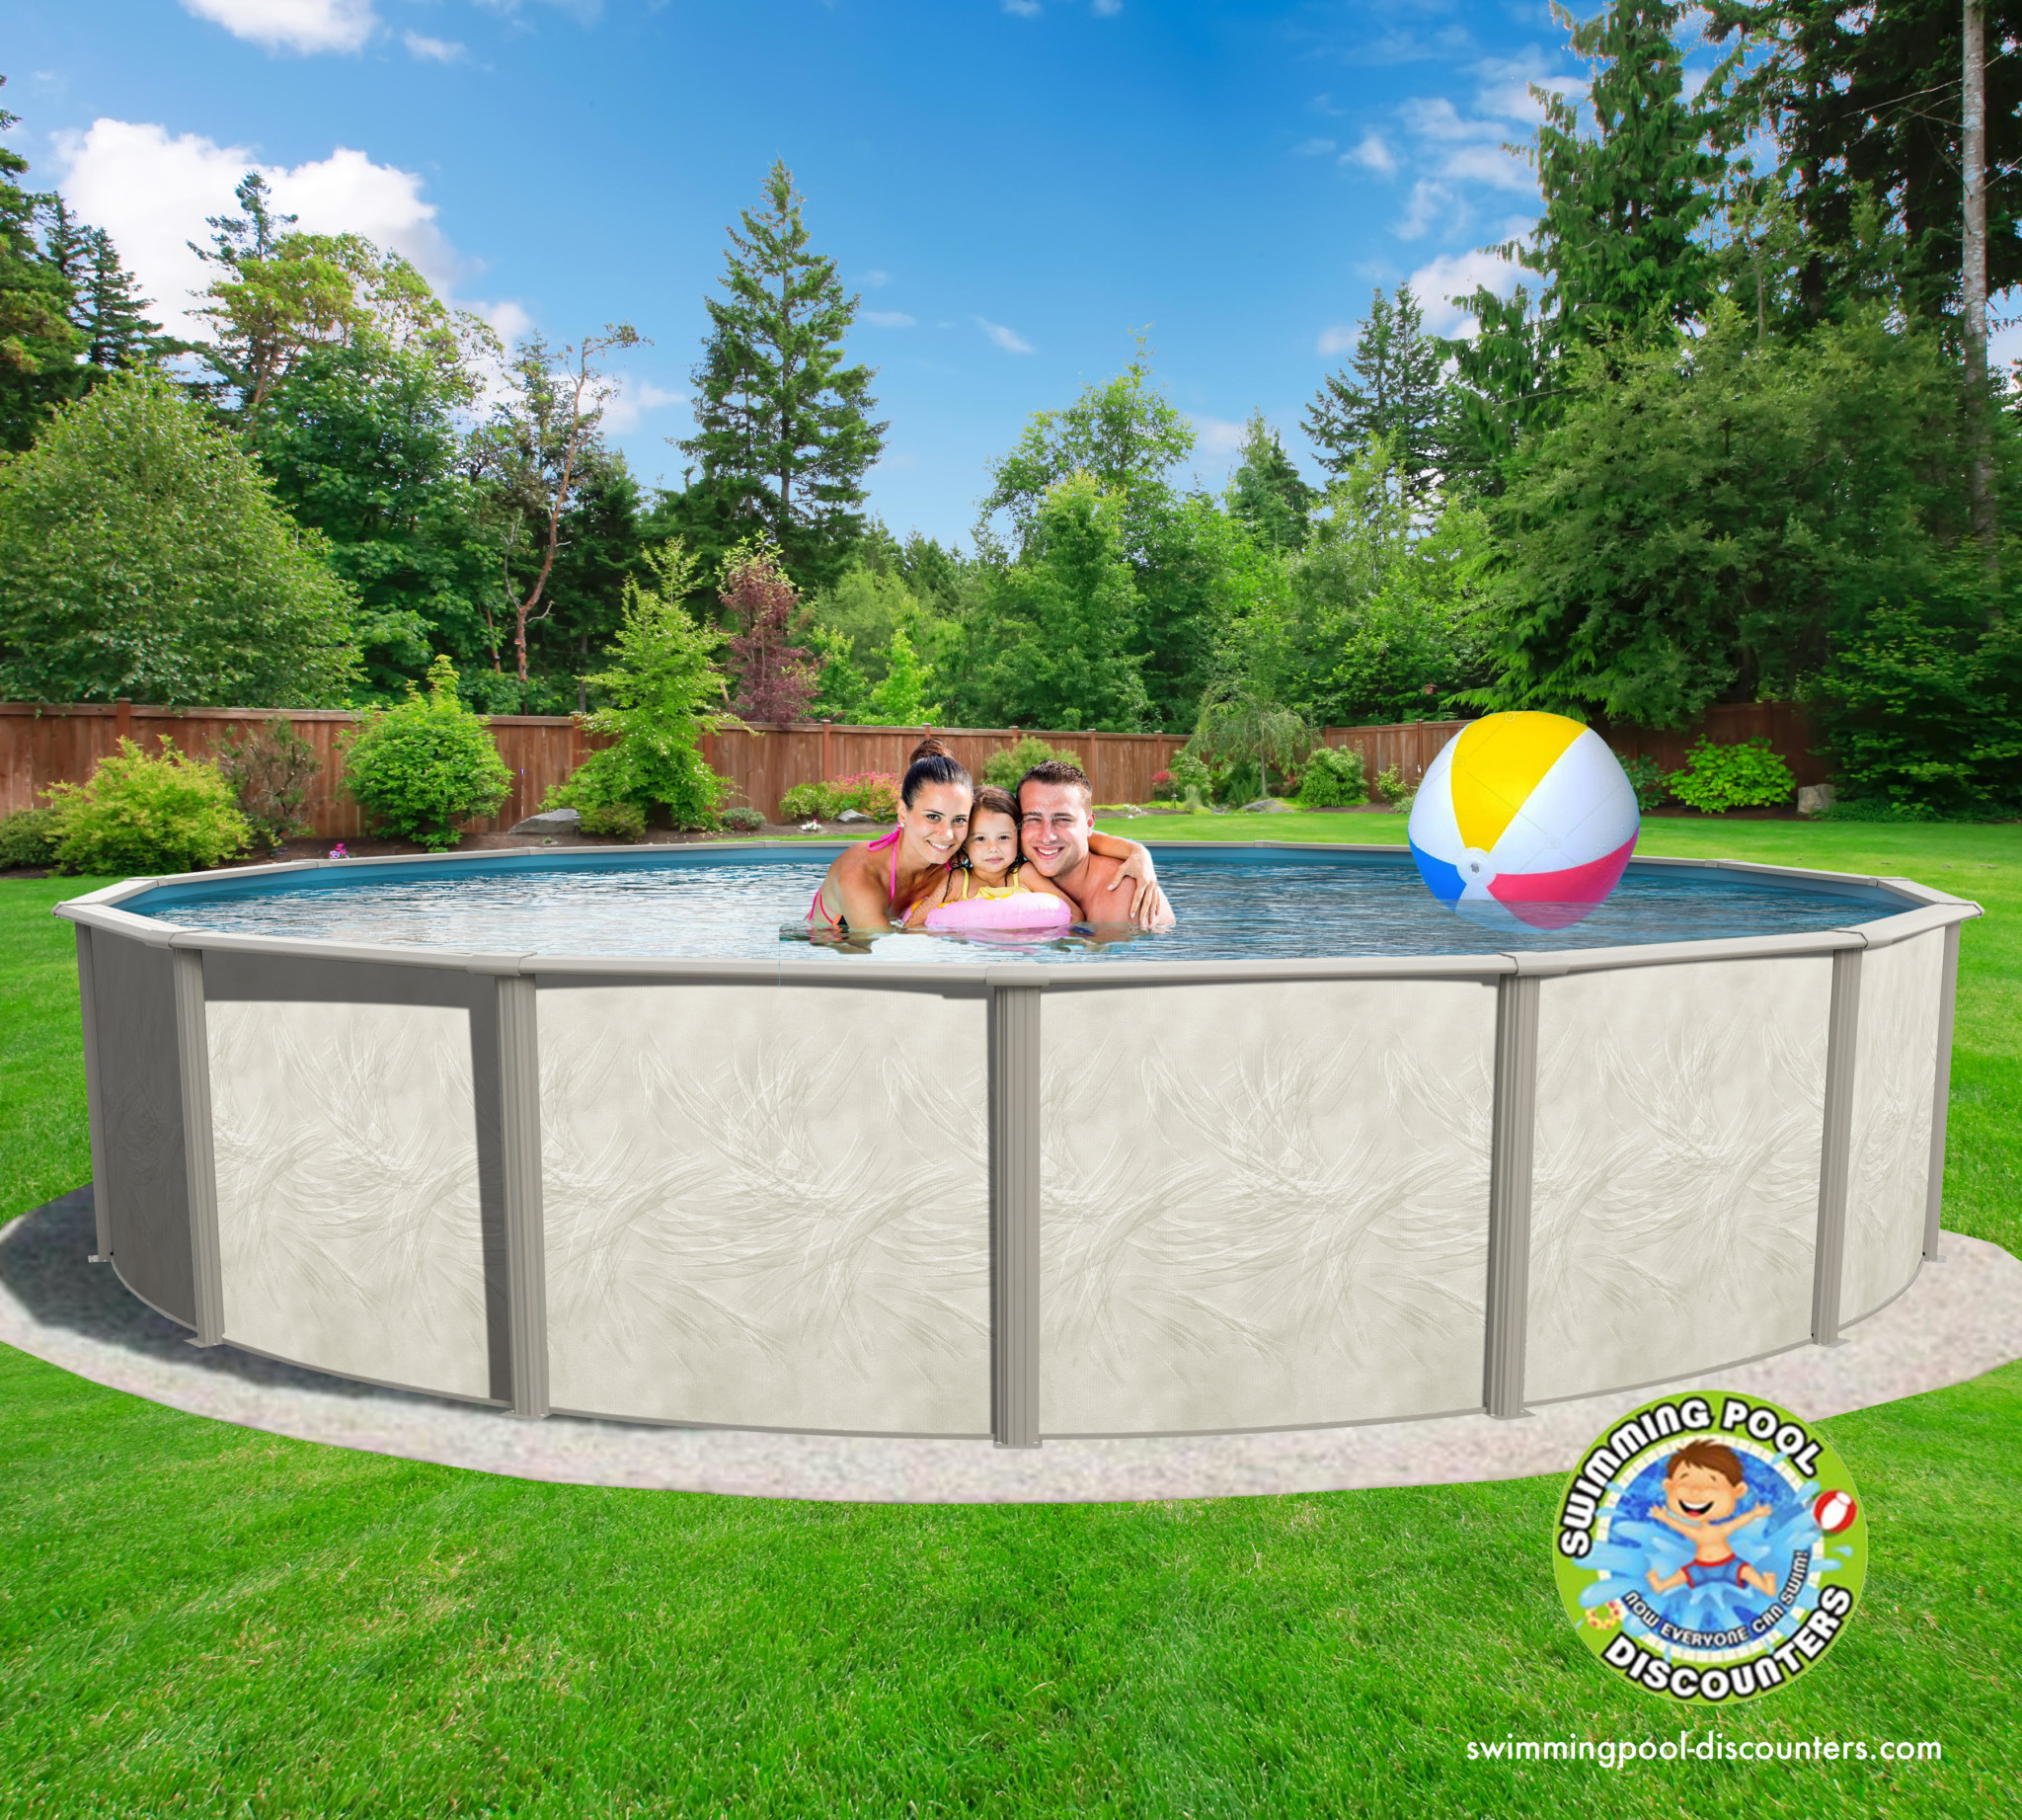 2019 27 x54 alumi shield 6in closeout with free goods - Swimming pool discounters ...